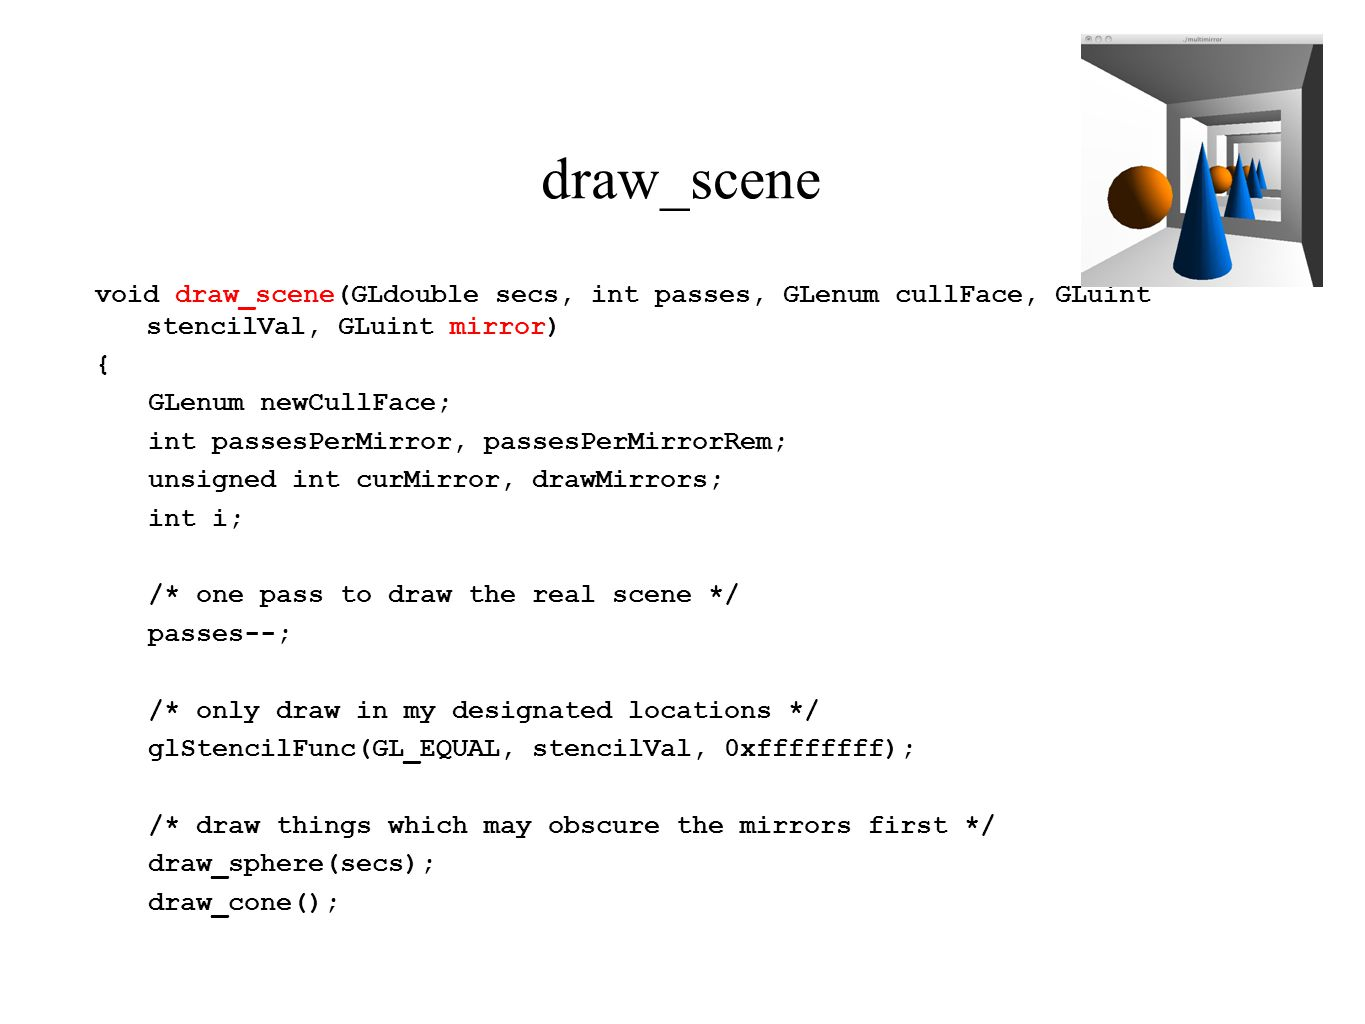 draw_scene void draw_scene(GLdouble secs, int passes, GLenum cullFace, GLuint stencilVal, GLuint mirror) { GLenum newCullFace; int passesPerMirror, passesPerMirrorRem; unsigned int curMirror, drawMirrors; int i; /* one pass to draw the real scene */ passes--; /* only draw in my designated locations */ glStencilFunc(GL_EQUAL, stencilVal, 0xffffffff); /* draw things which may obscure the mirrors first */ draw_sphere(secs); draw_cone();